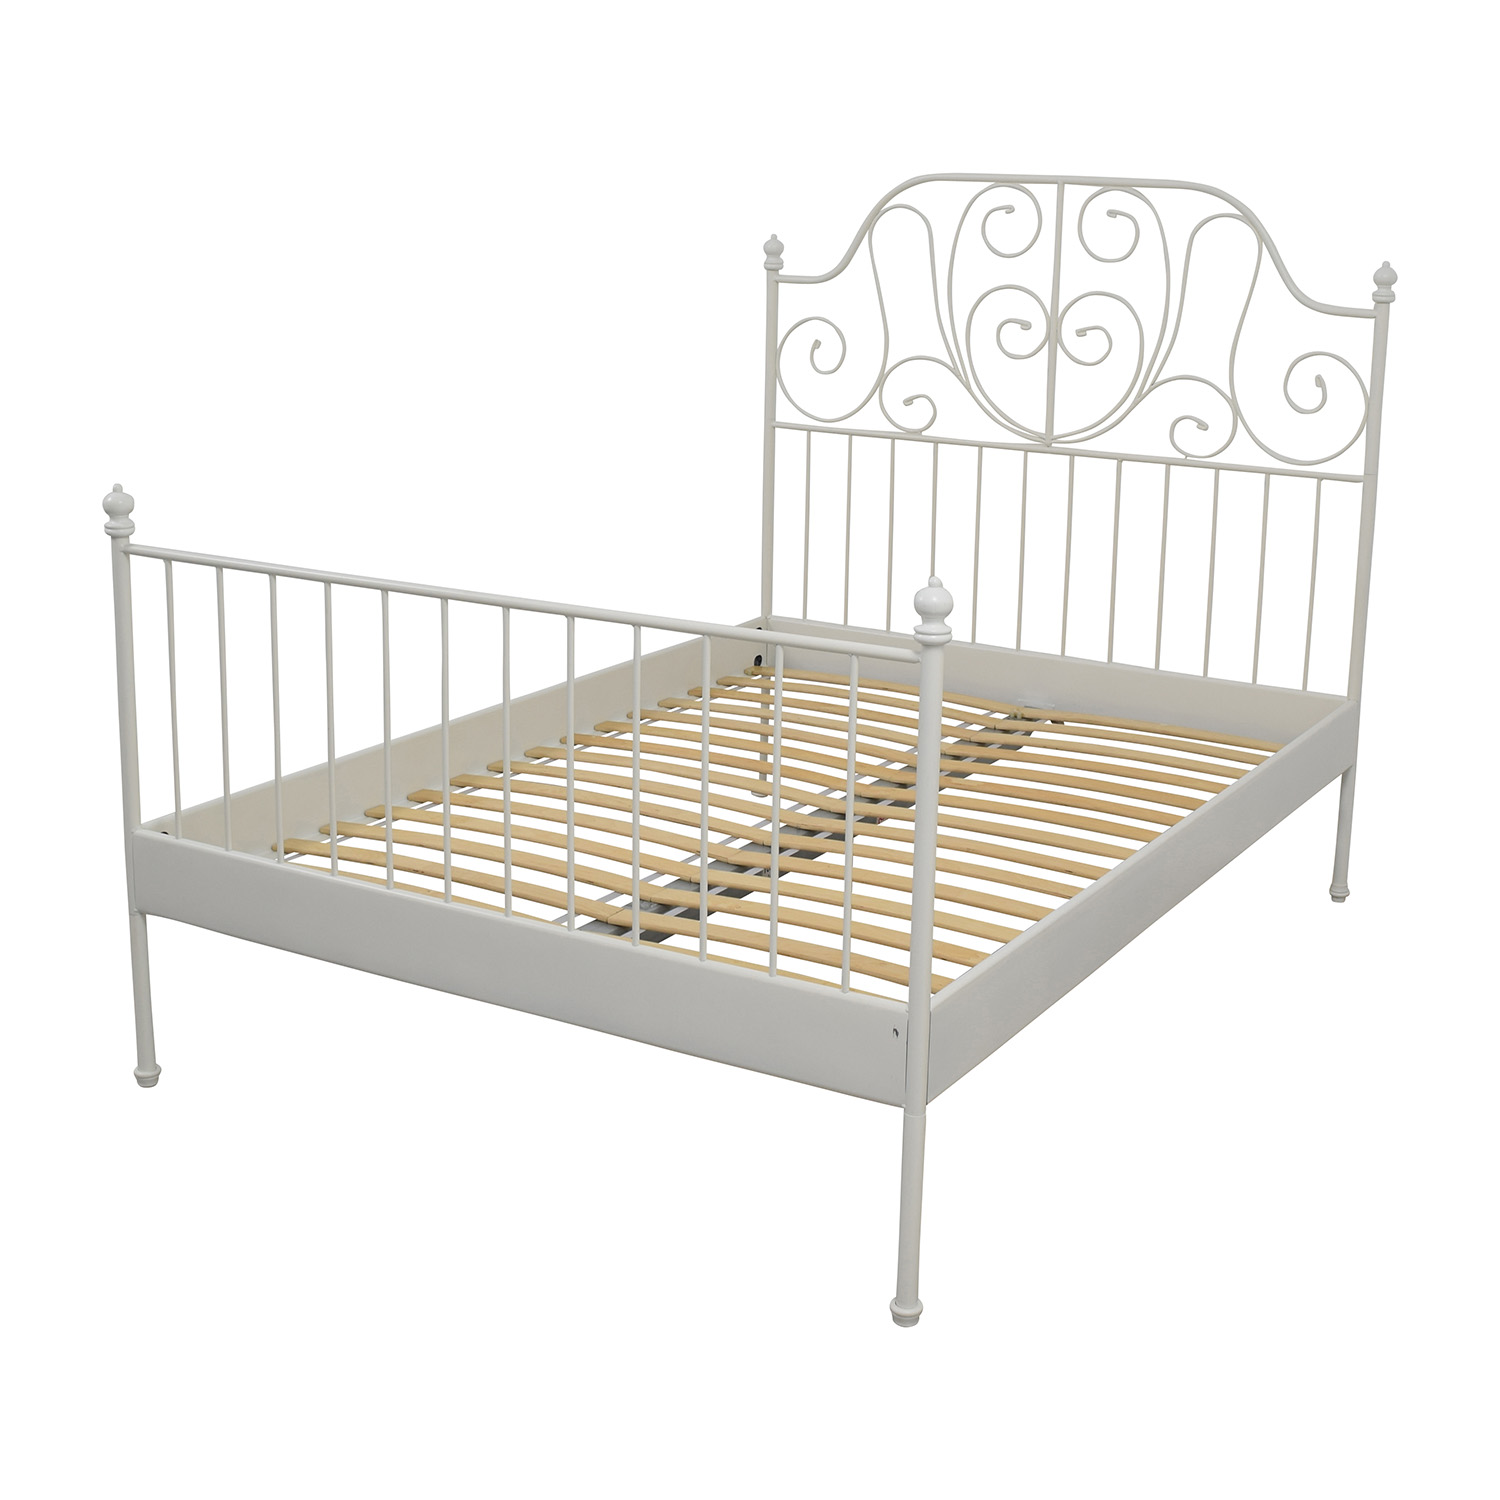 64 off ikea ikea leirvik full size bed frame beds for Full size bed frame